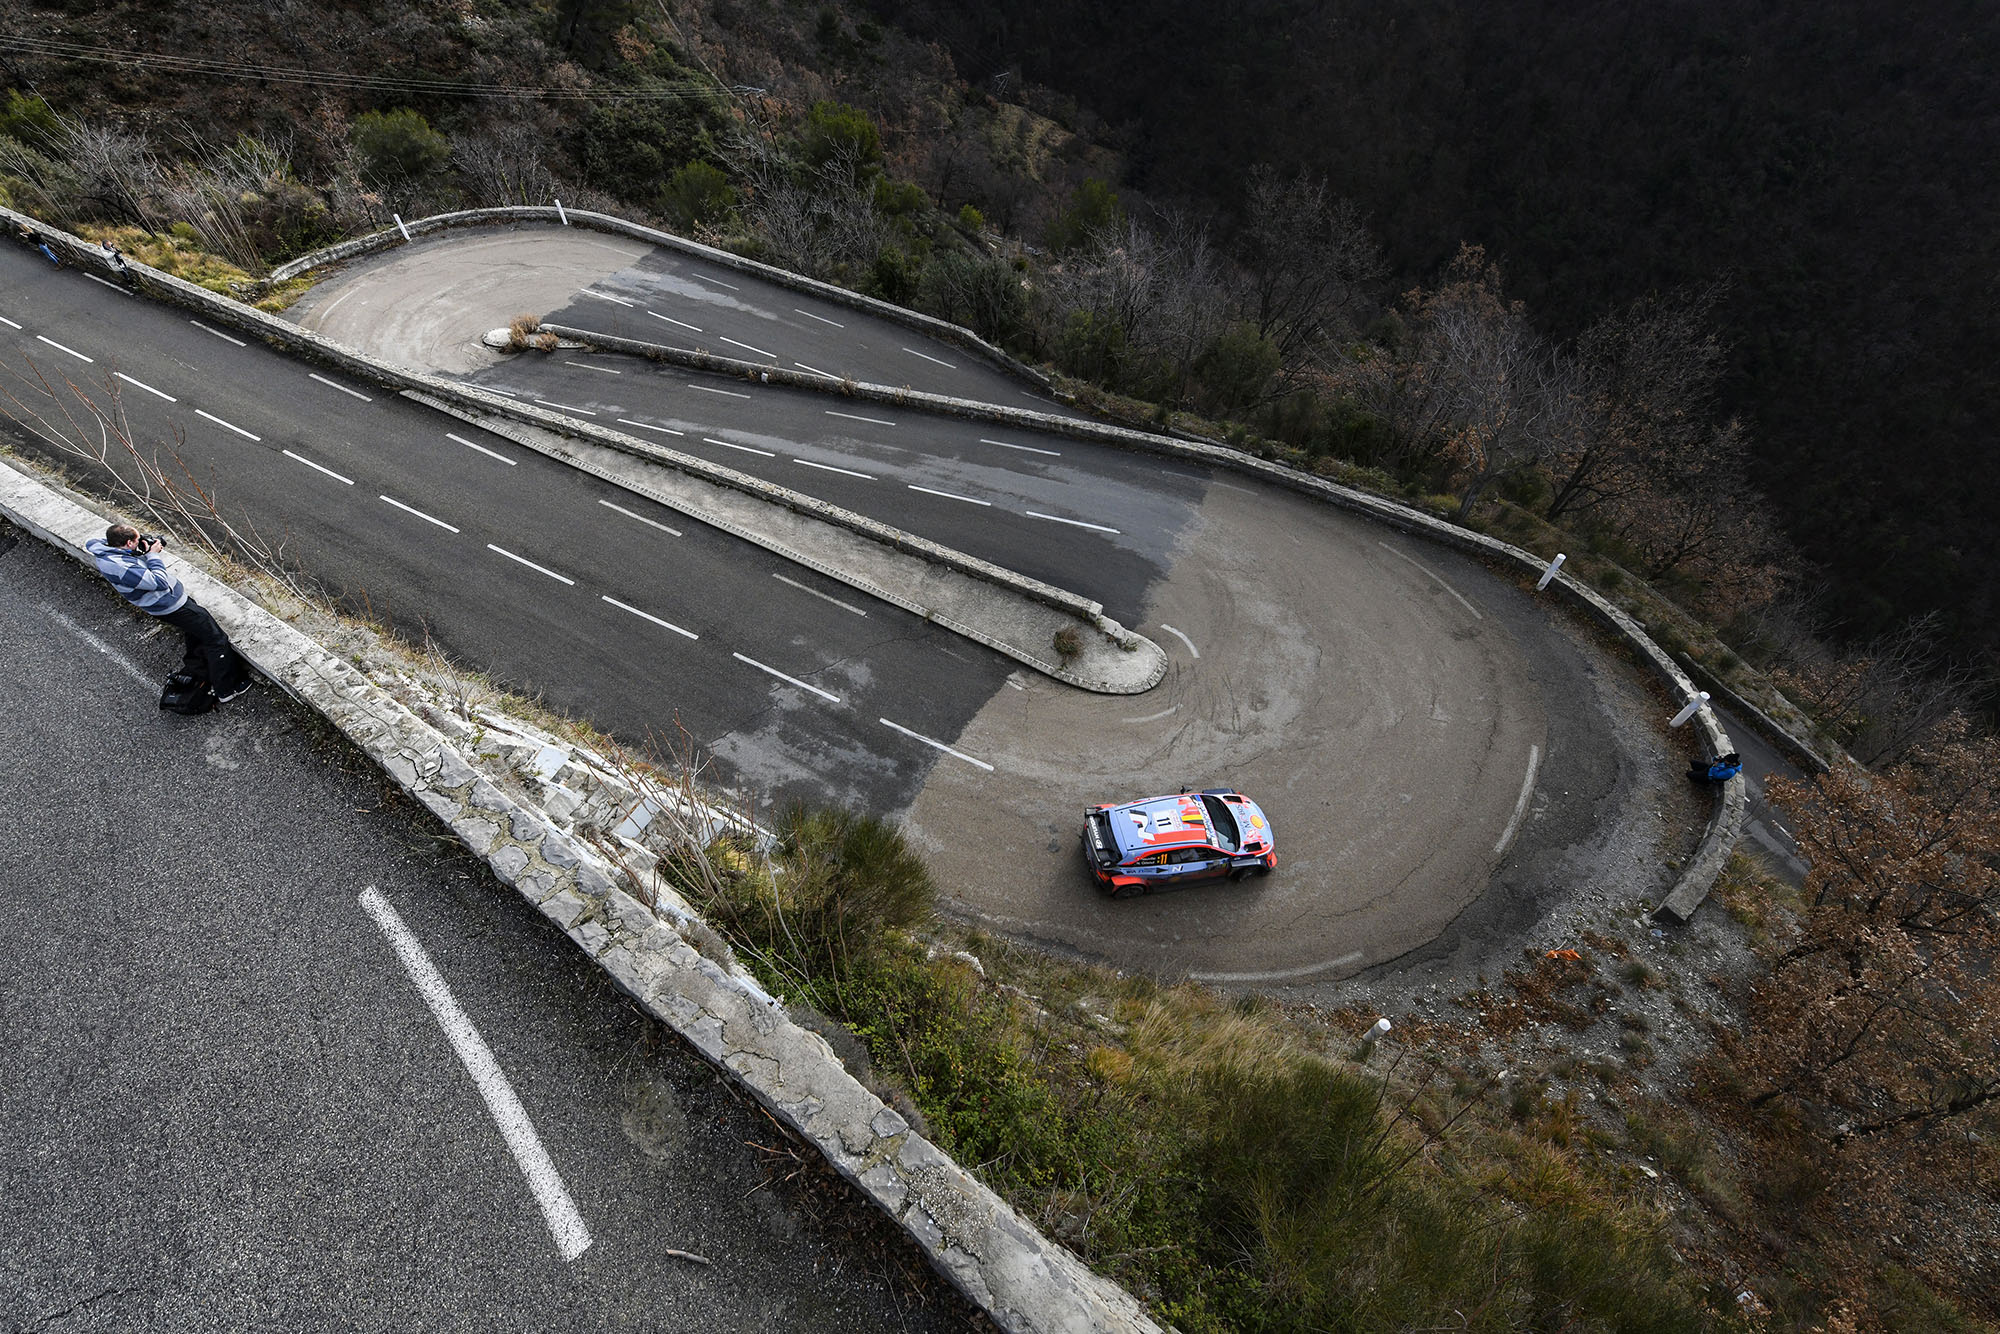 Thierry Neuville heading down a mountain on his way to victory in the 2020 Monte Carlo Rally